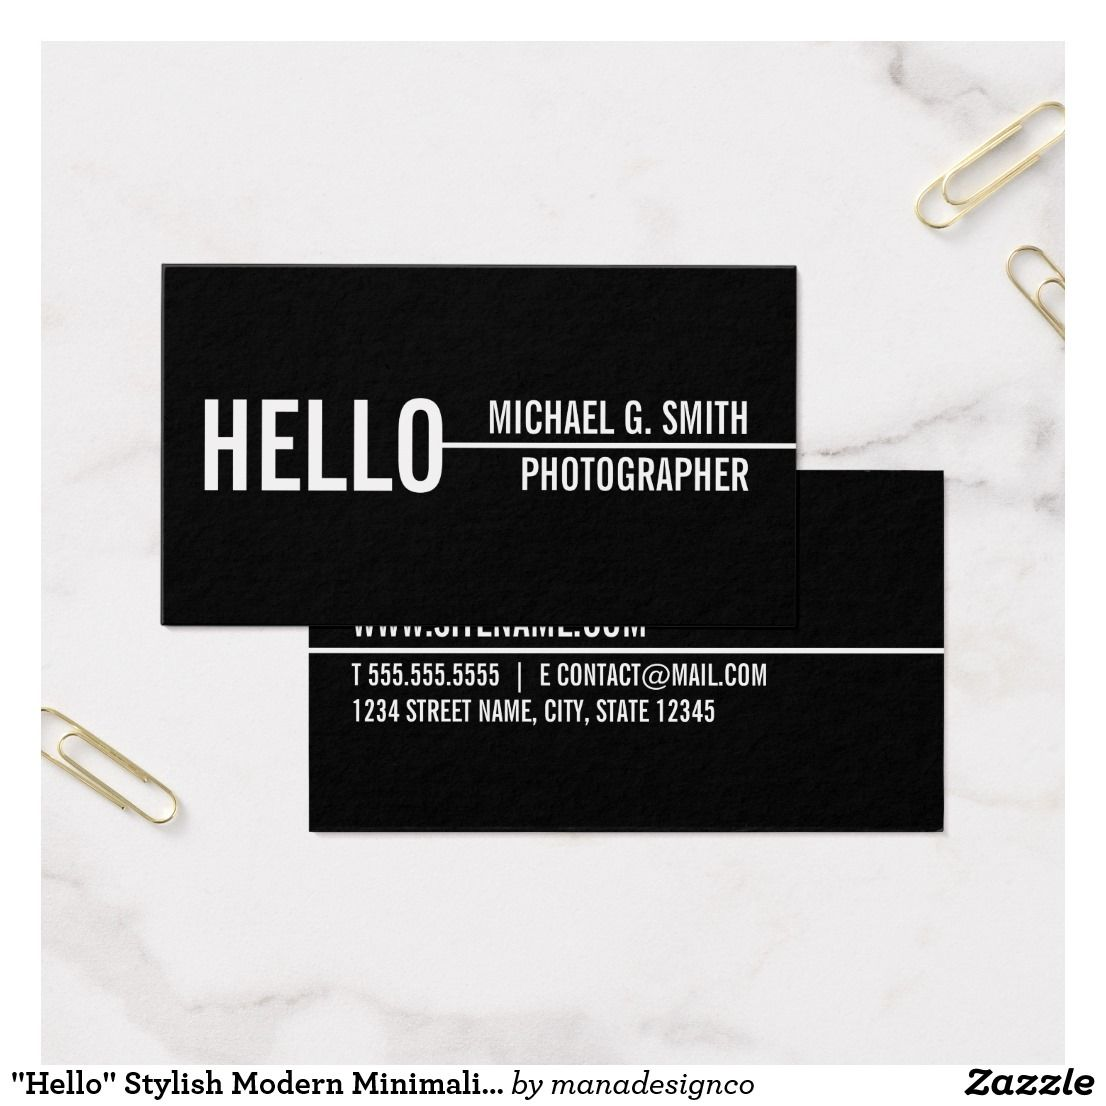 Hello stylish modern minimalist business card business hello stylish modern minimalist business card reheart Images